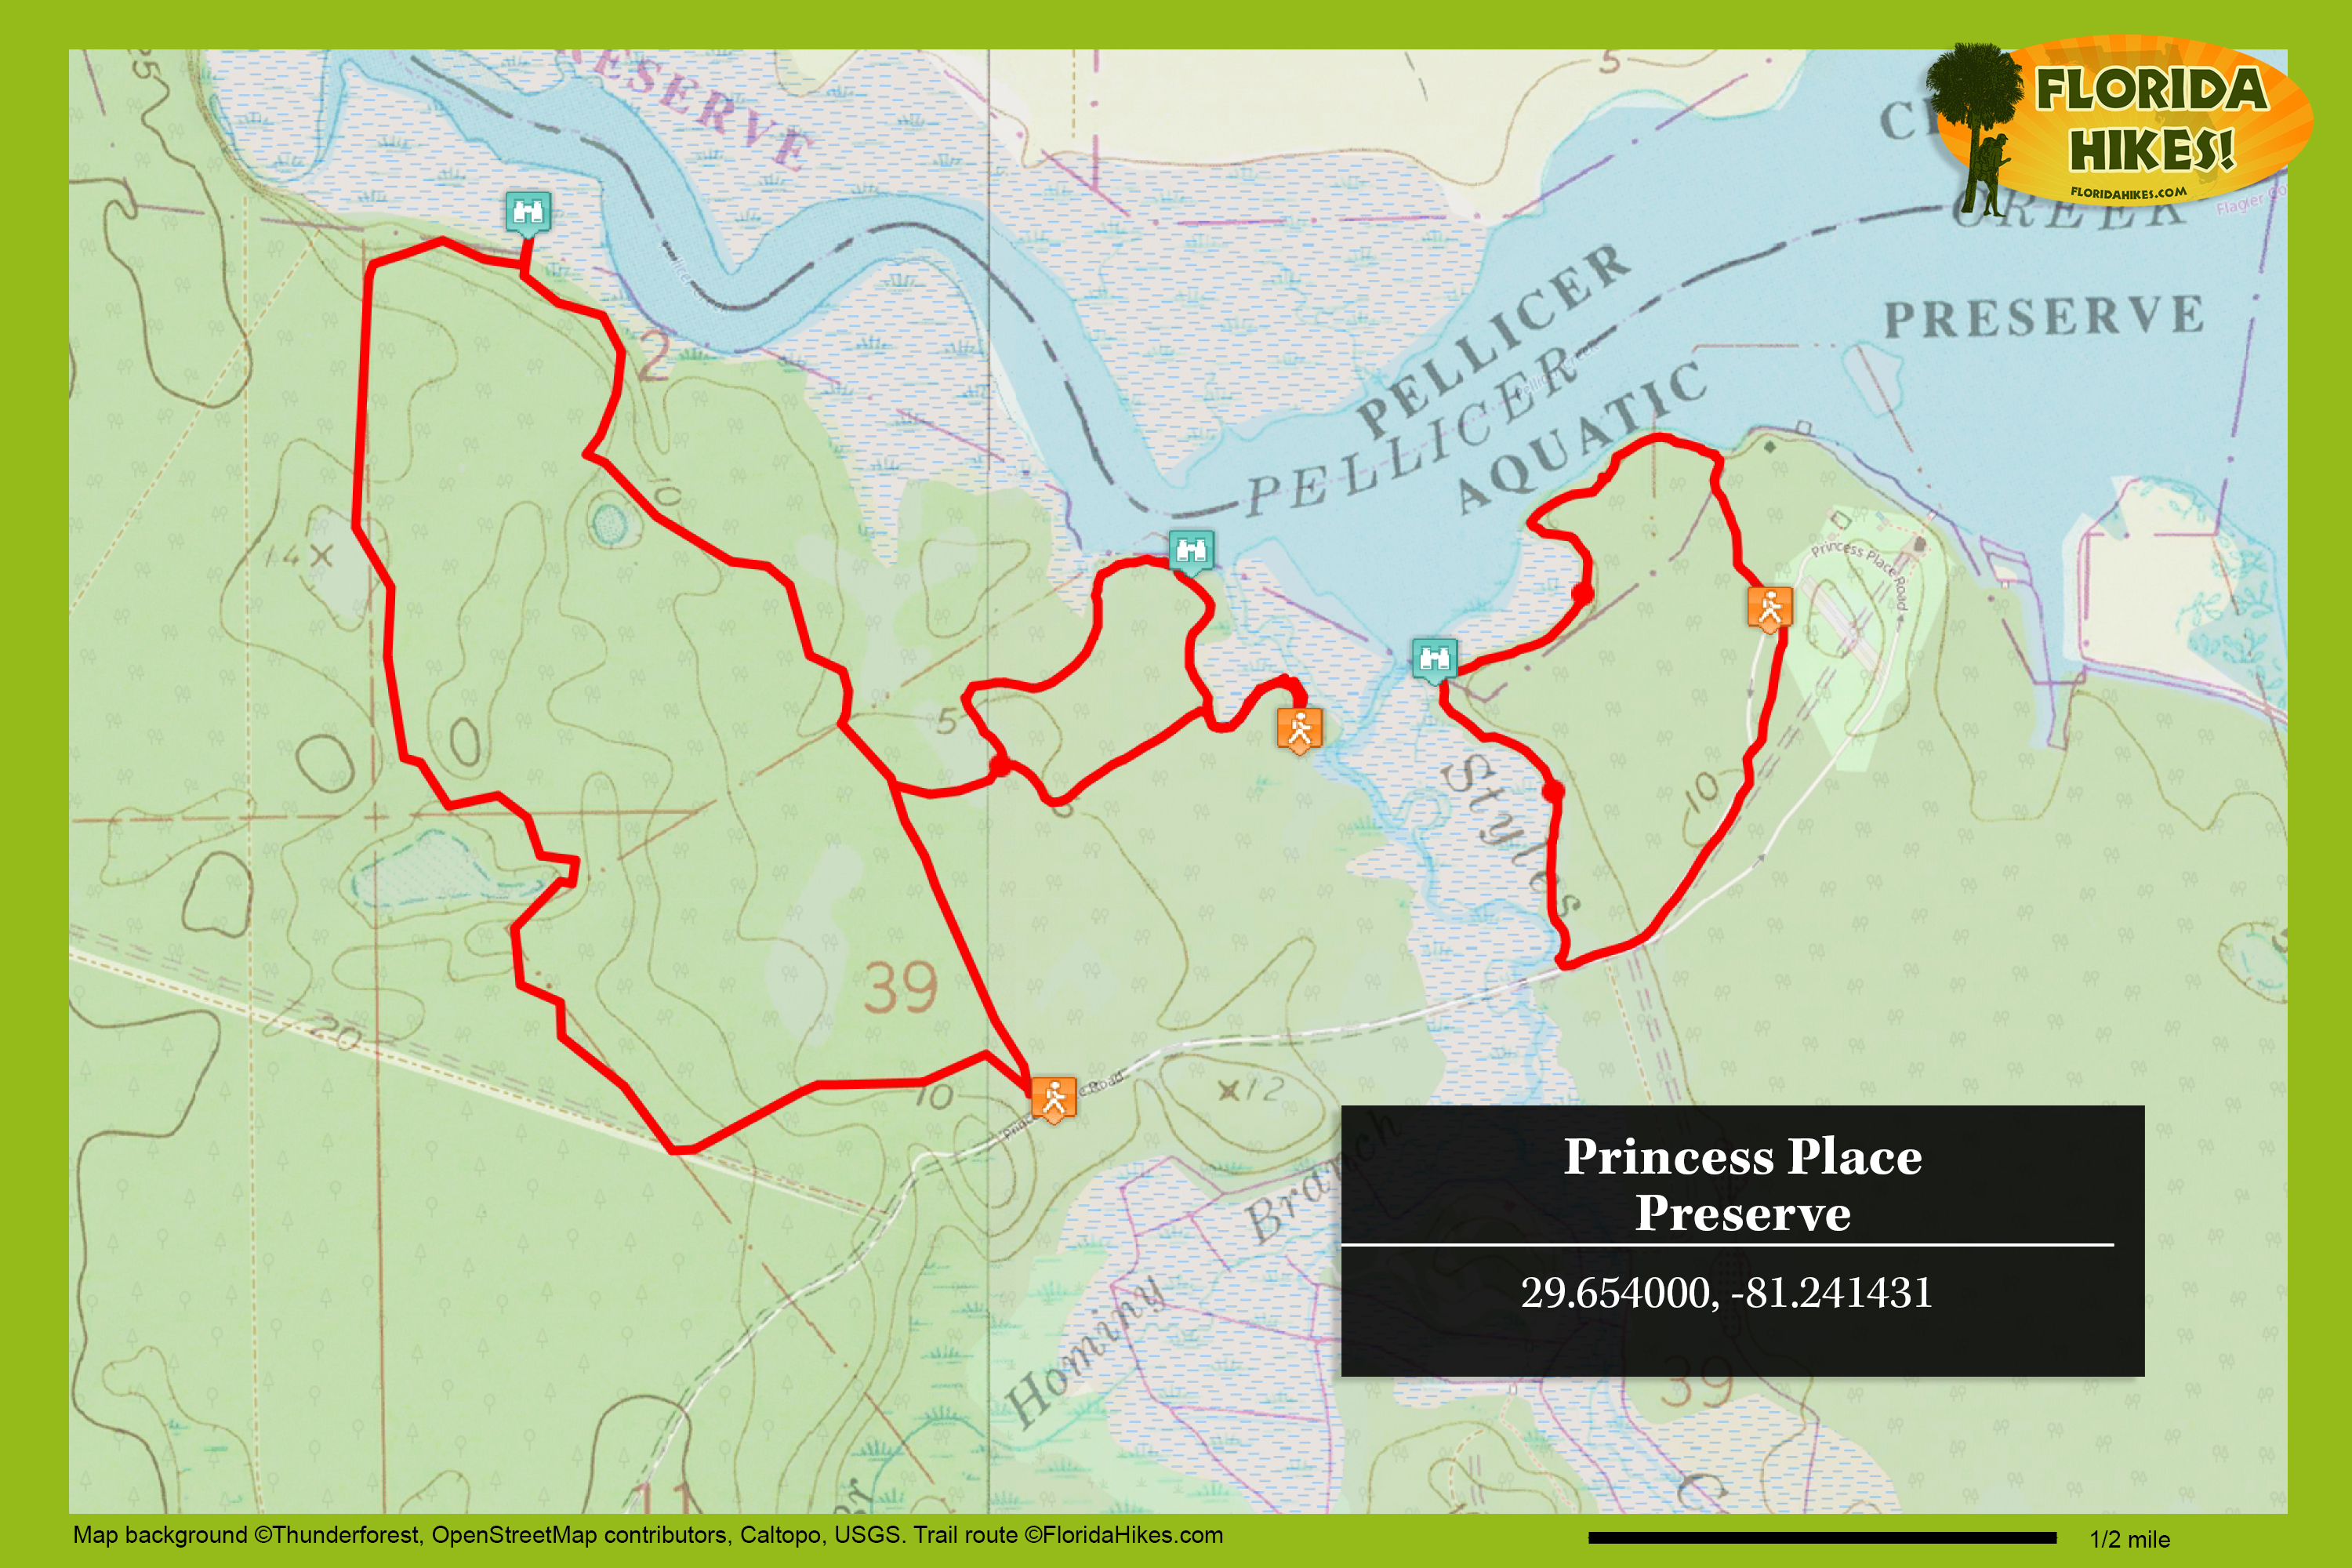 Princess Place Preserve | Florida Hikes!